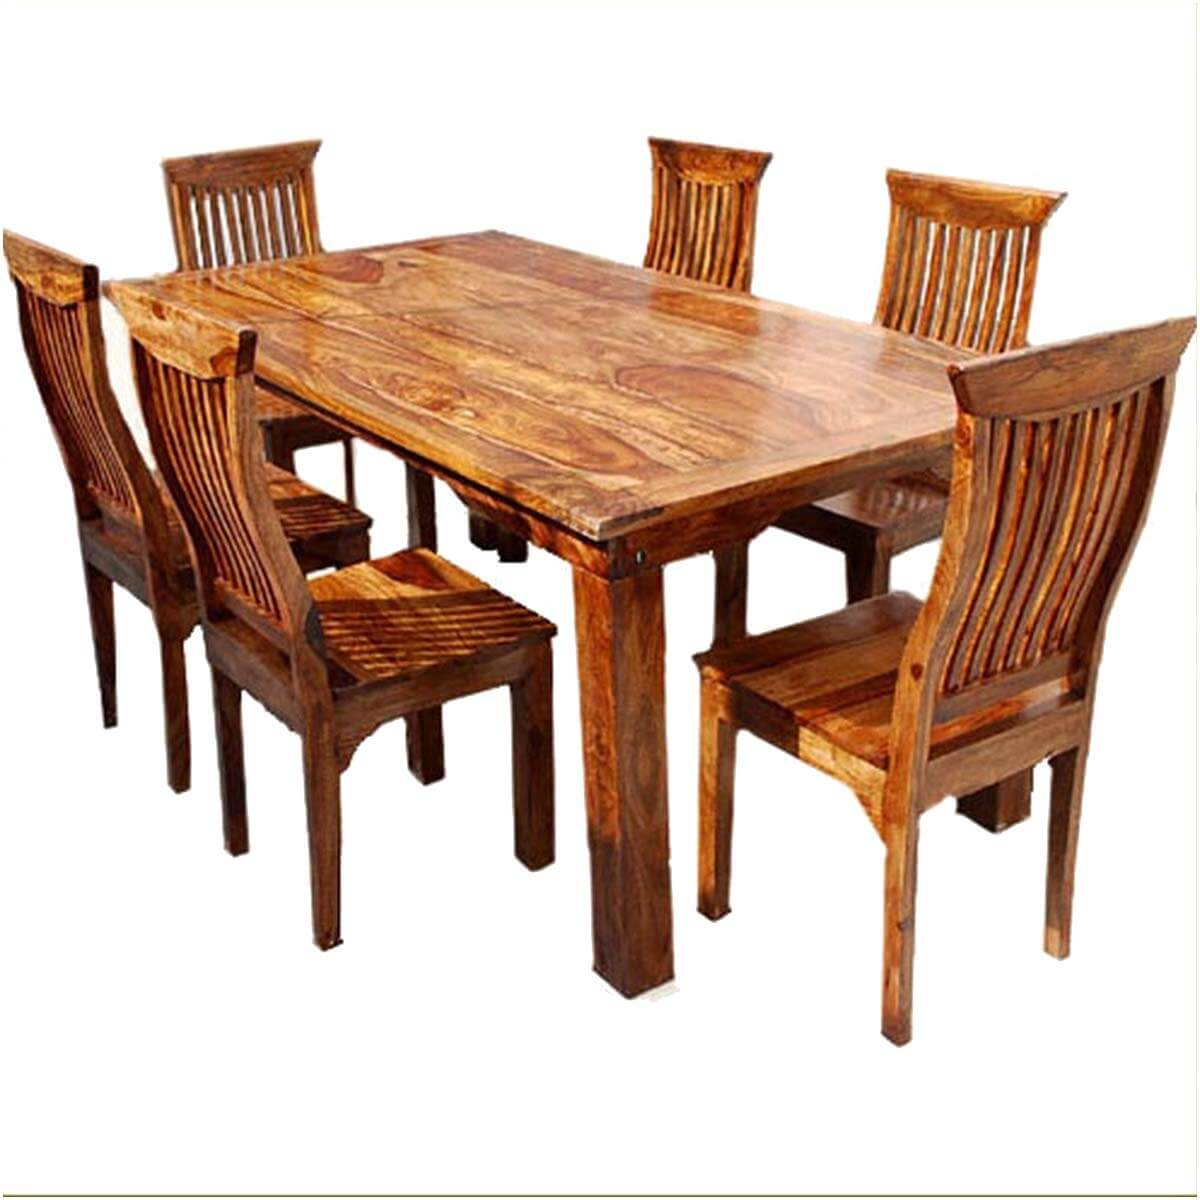 Dallas ranch solid wood rustic dining table chairs hutch set for Dining table set designs